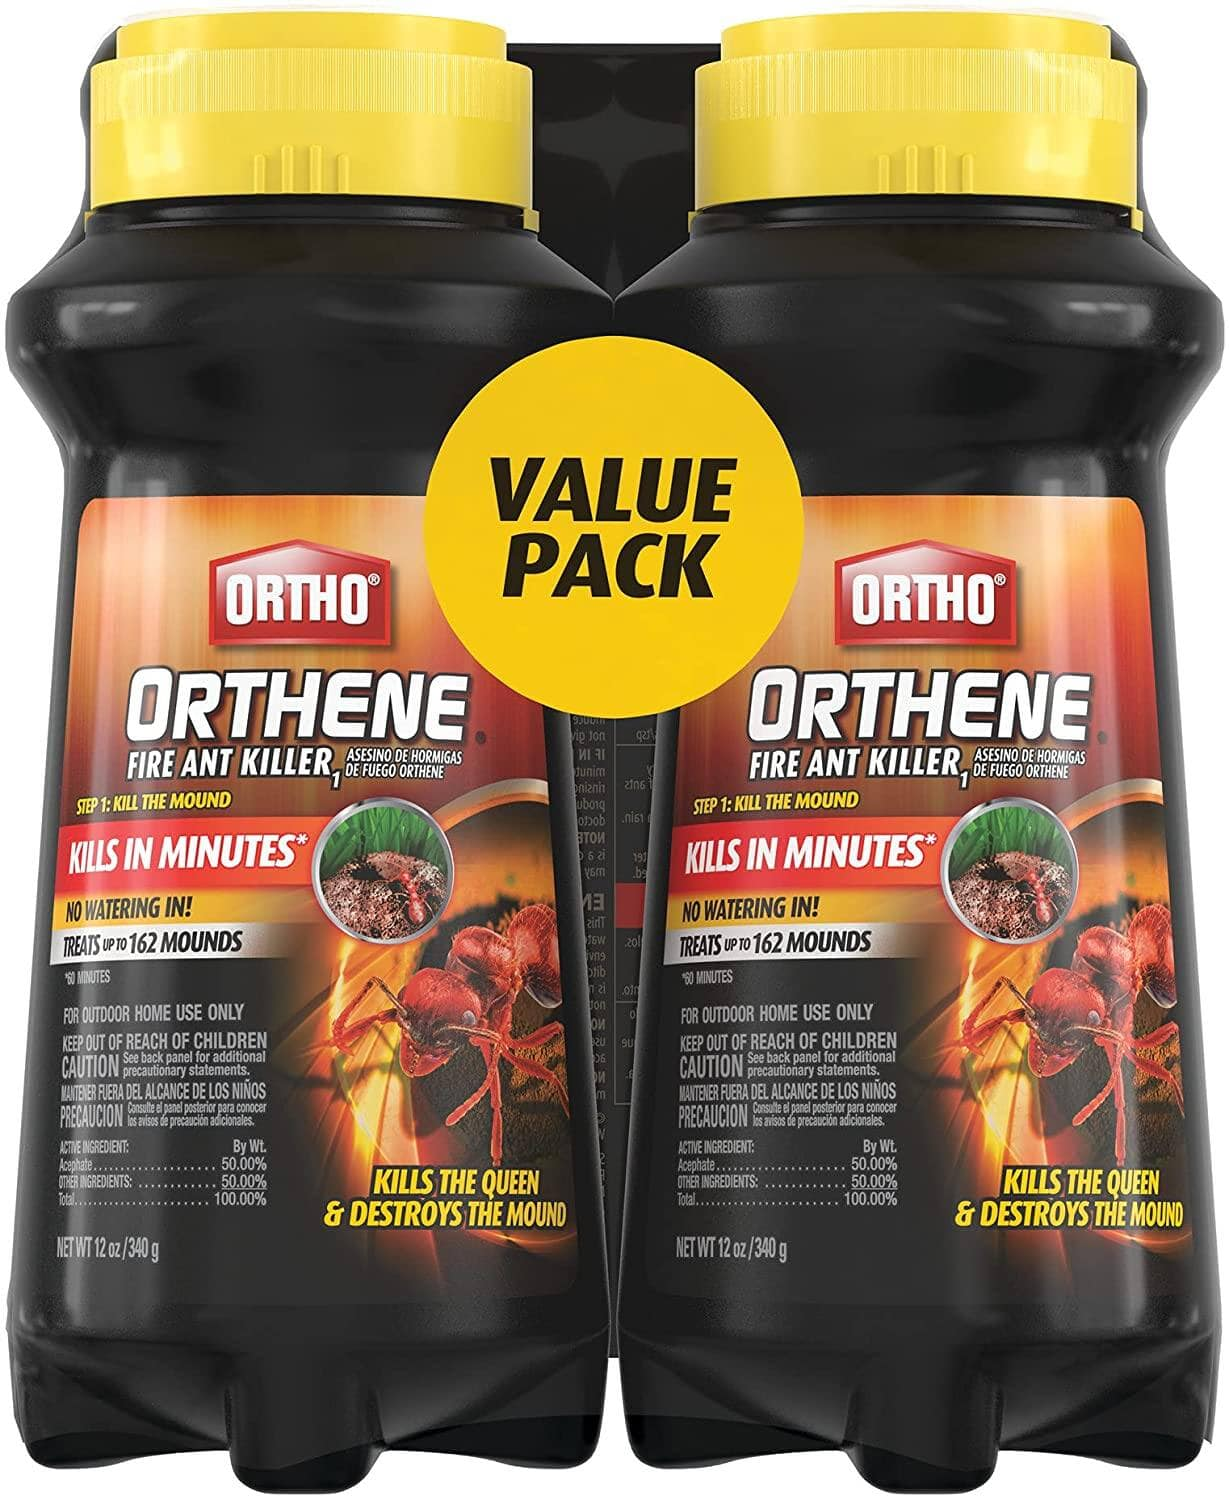 *Back* 2-Pack 12-Oz Ortho Orthene Fire Ant Killer $13.43 + Free Shipping w/ Prime or $25+